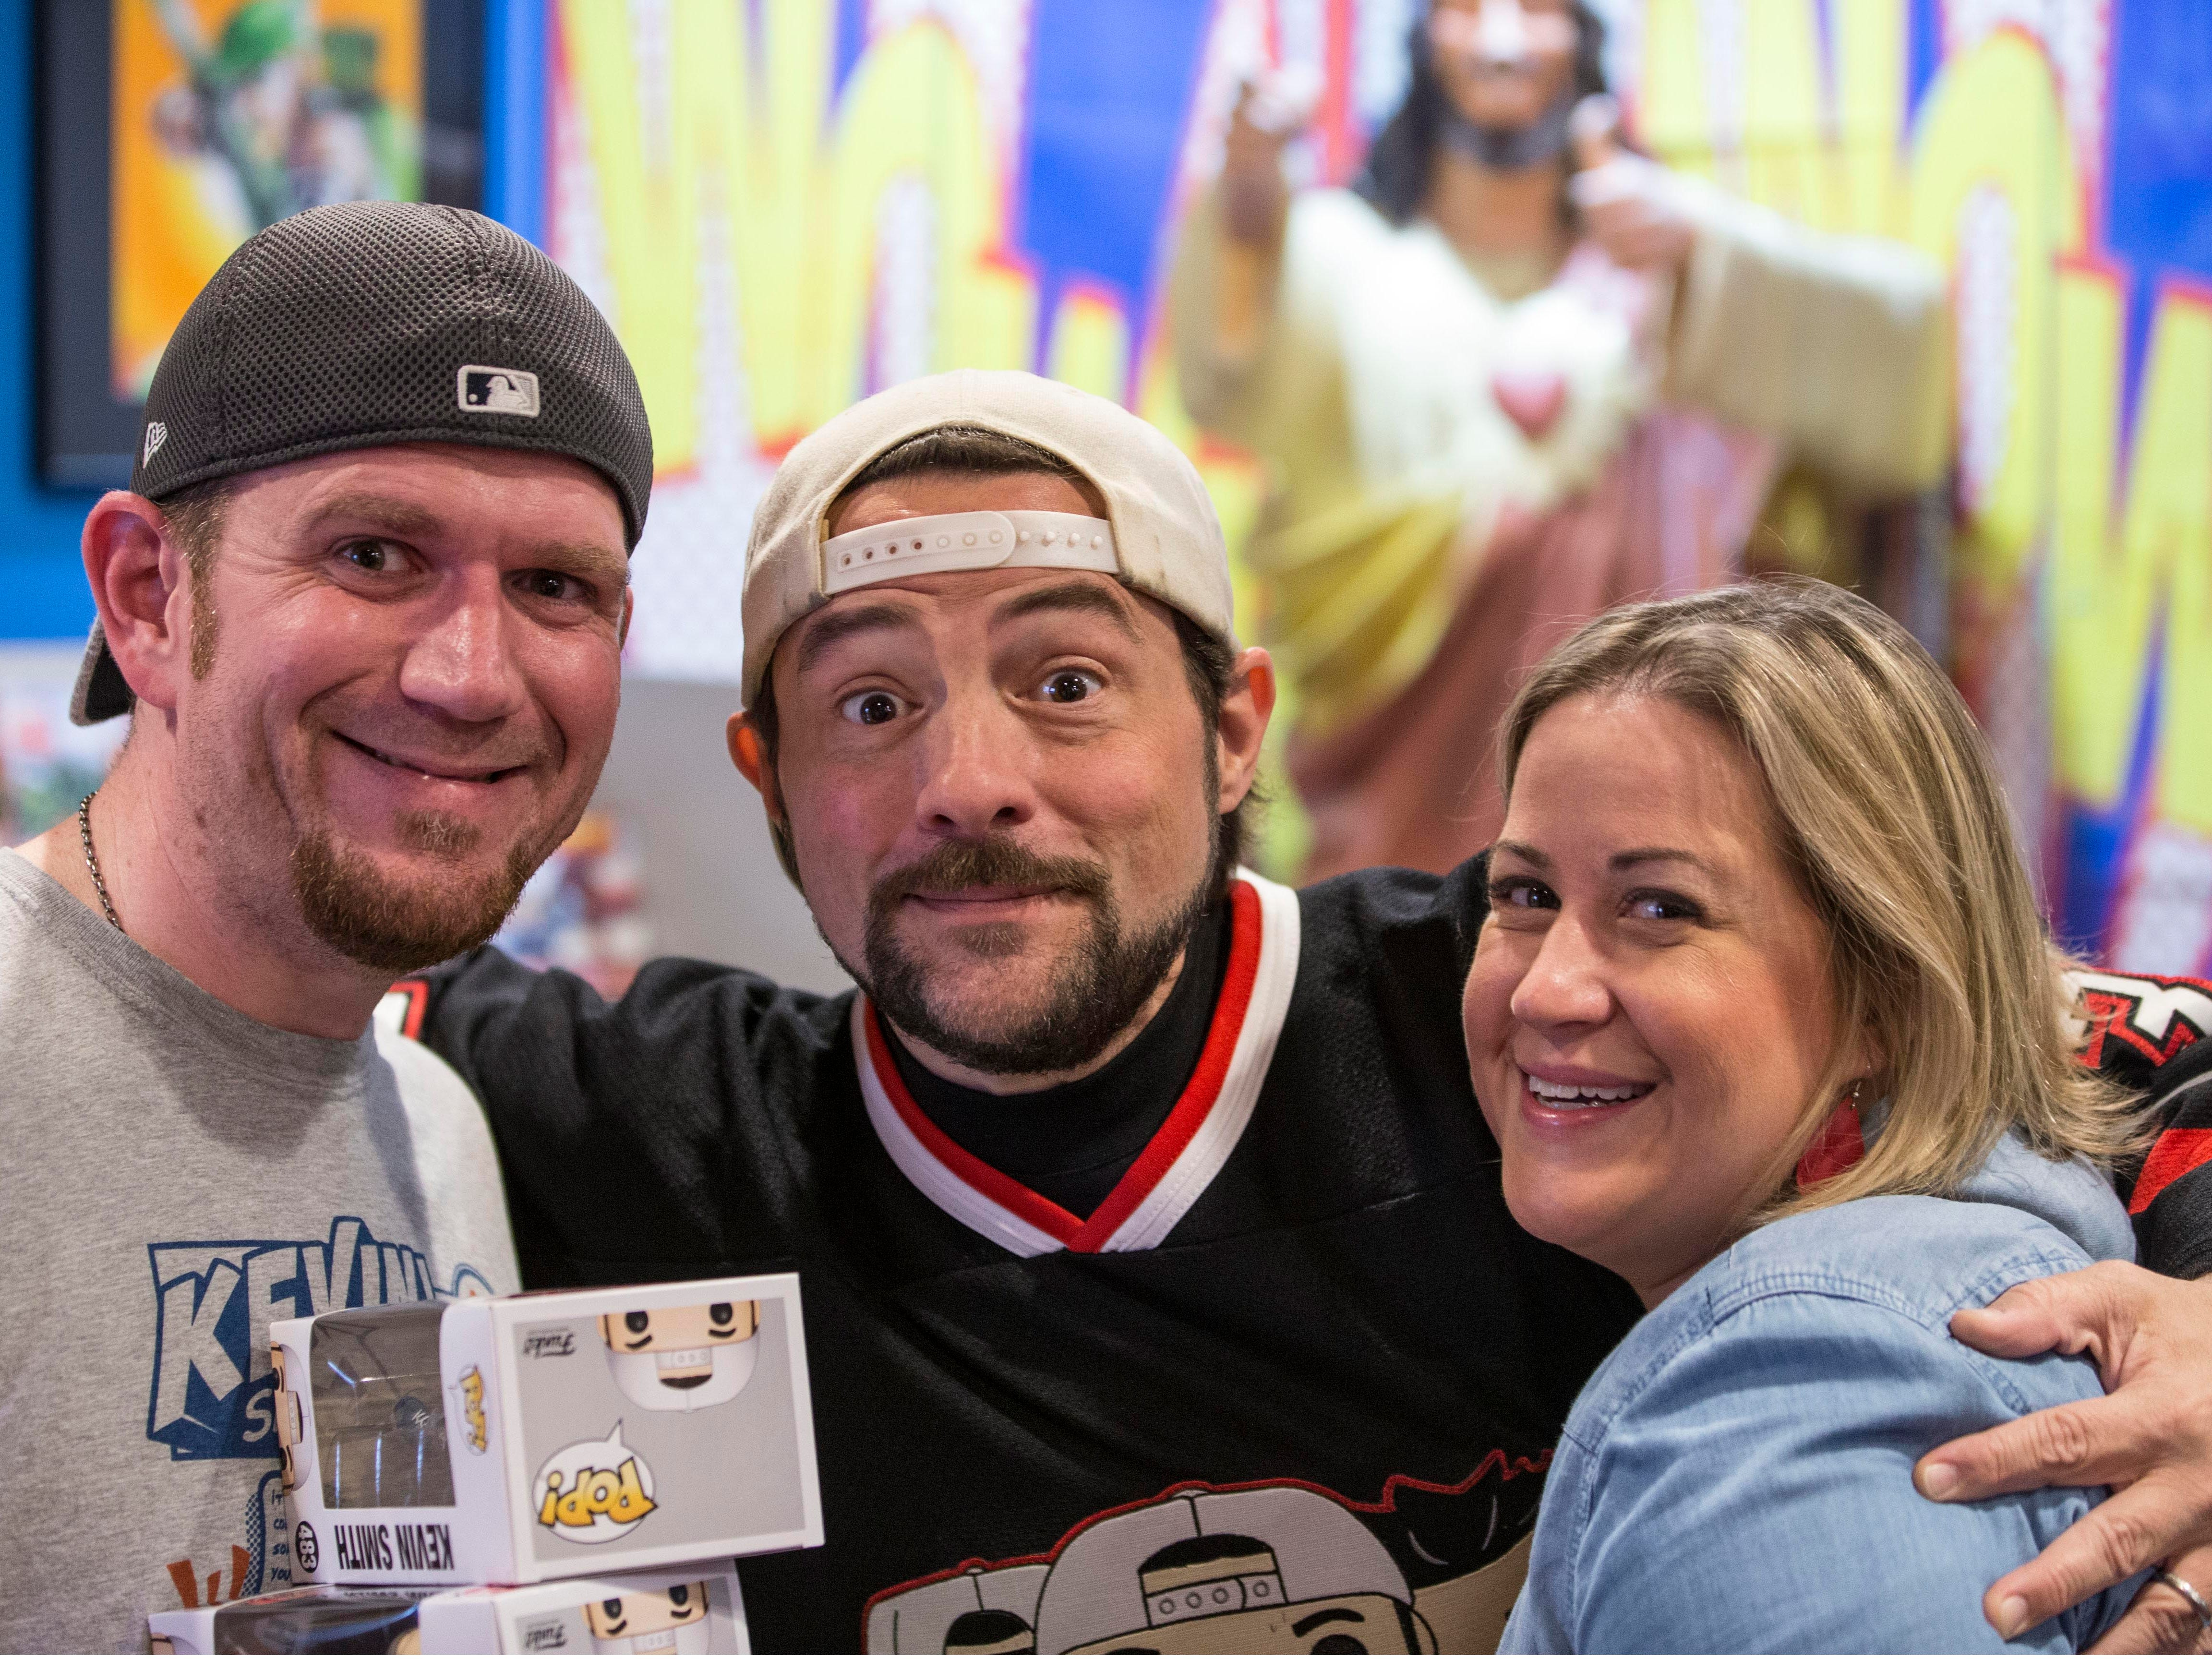 New Jersey native, filmmaker, Kevin Smith signs autographs for fans at his comic book store Jay and Silent Bob's Secret Stash.  Red Bank, NJ on Saturday, May 5, 2018